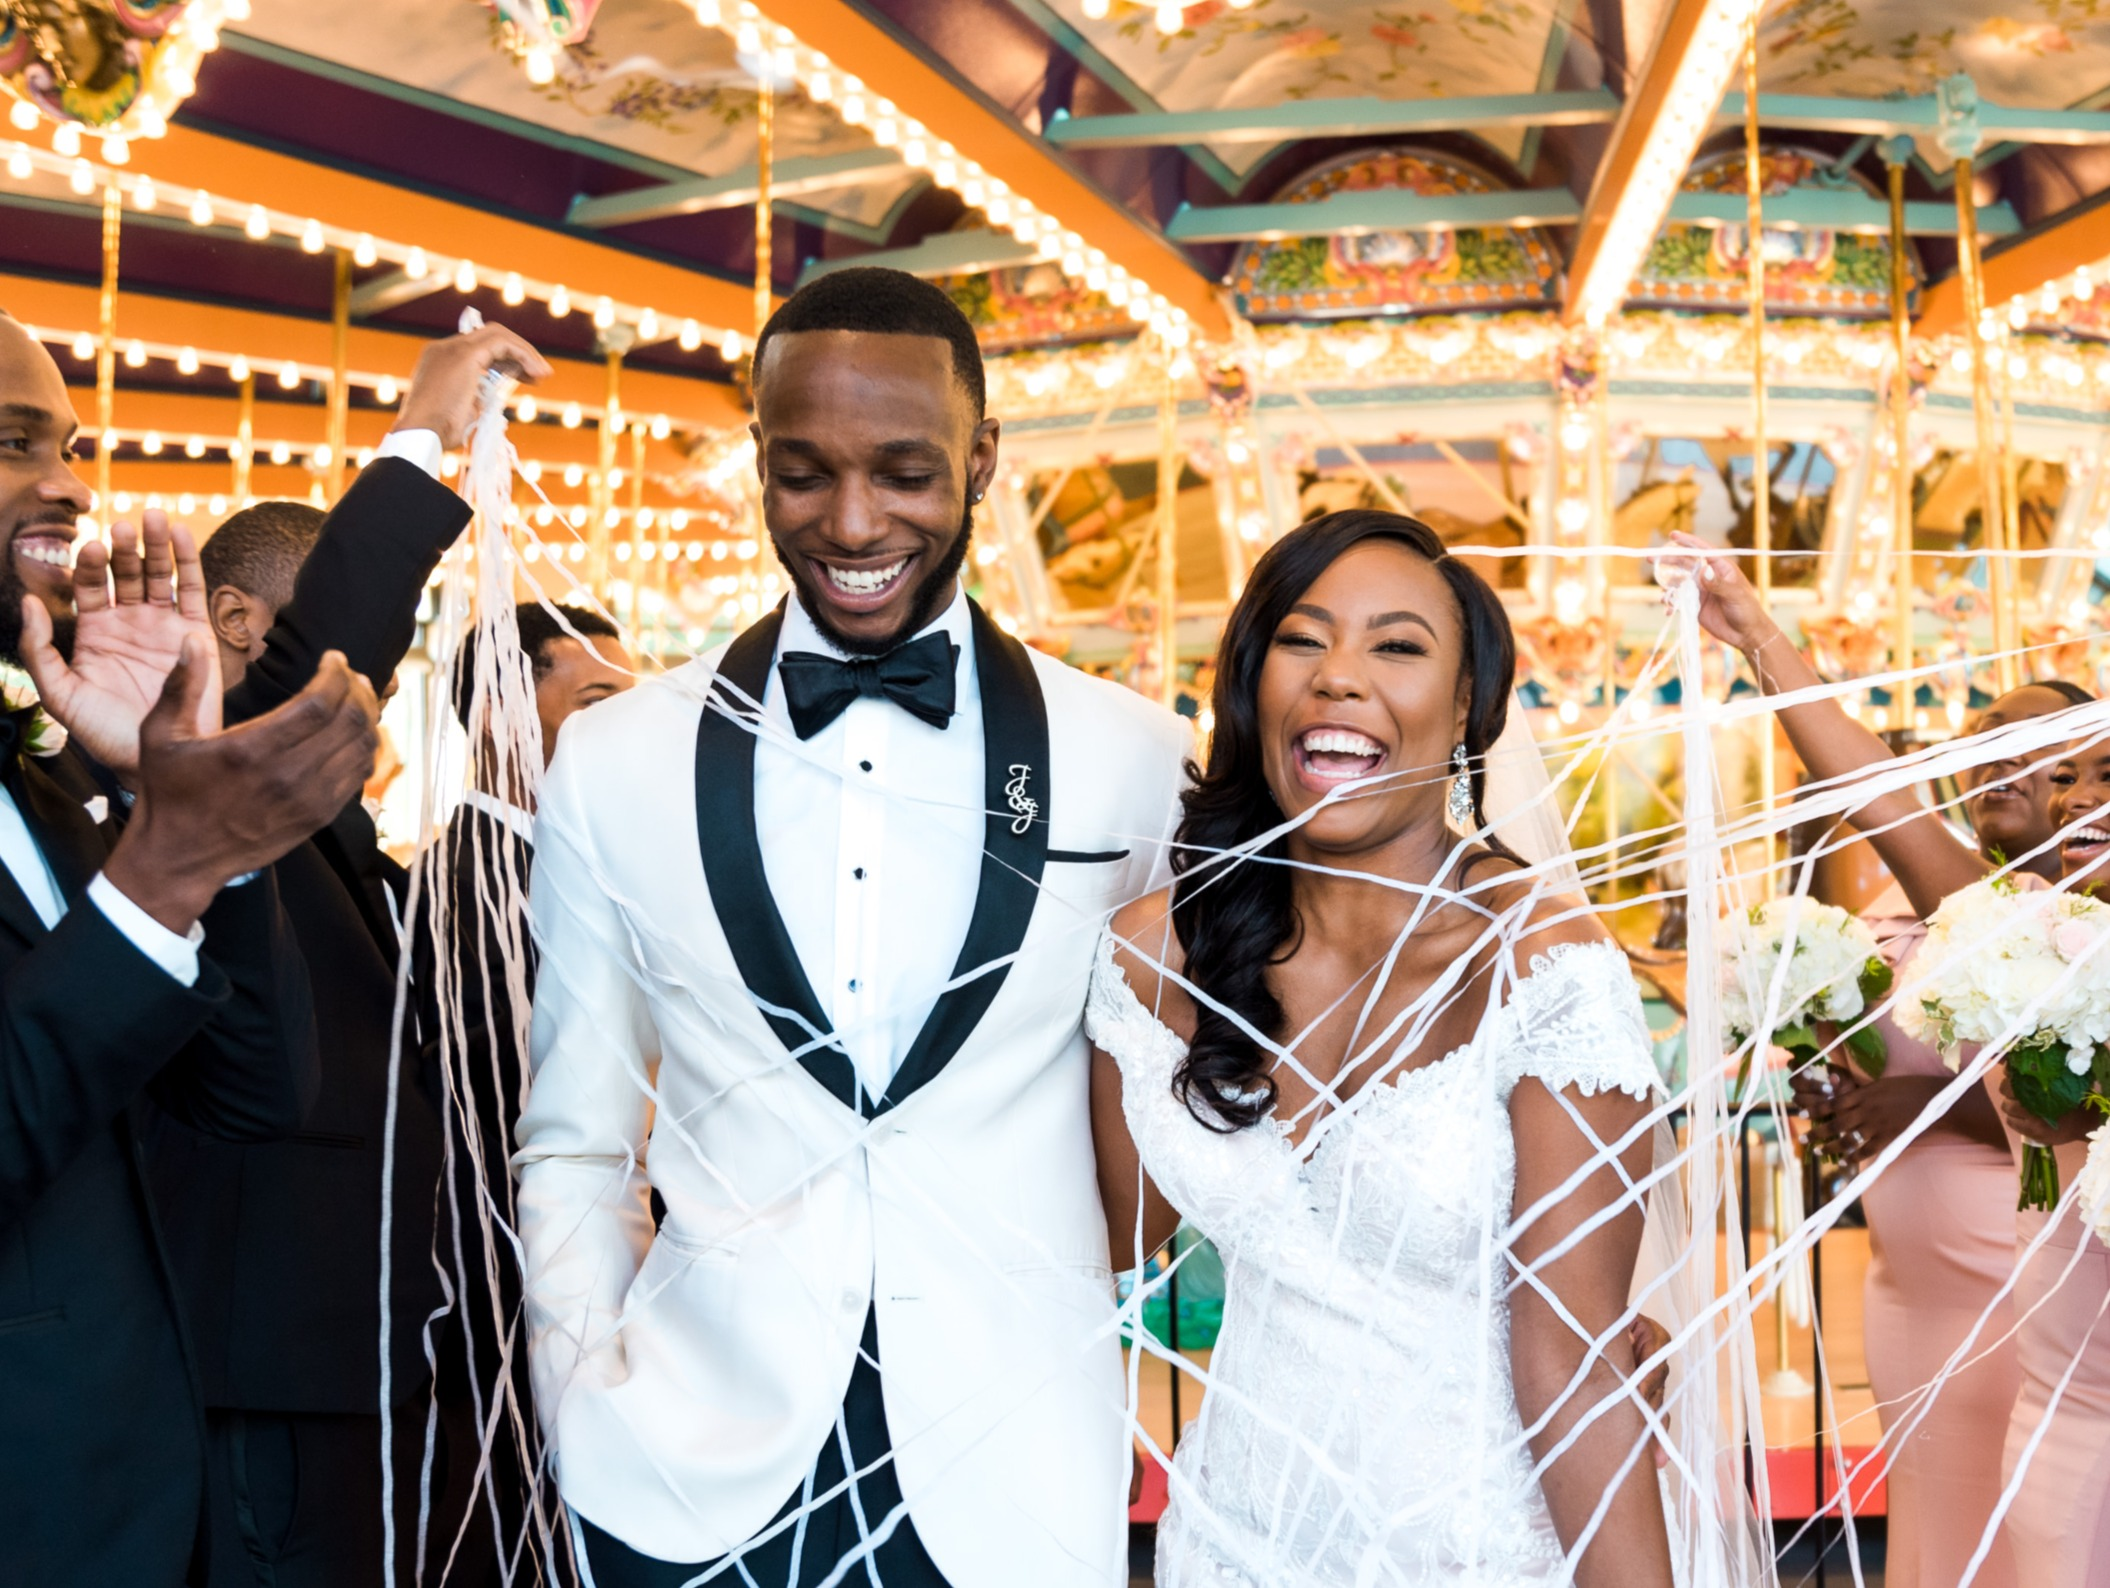 Children's Museum of Memphis Wedding